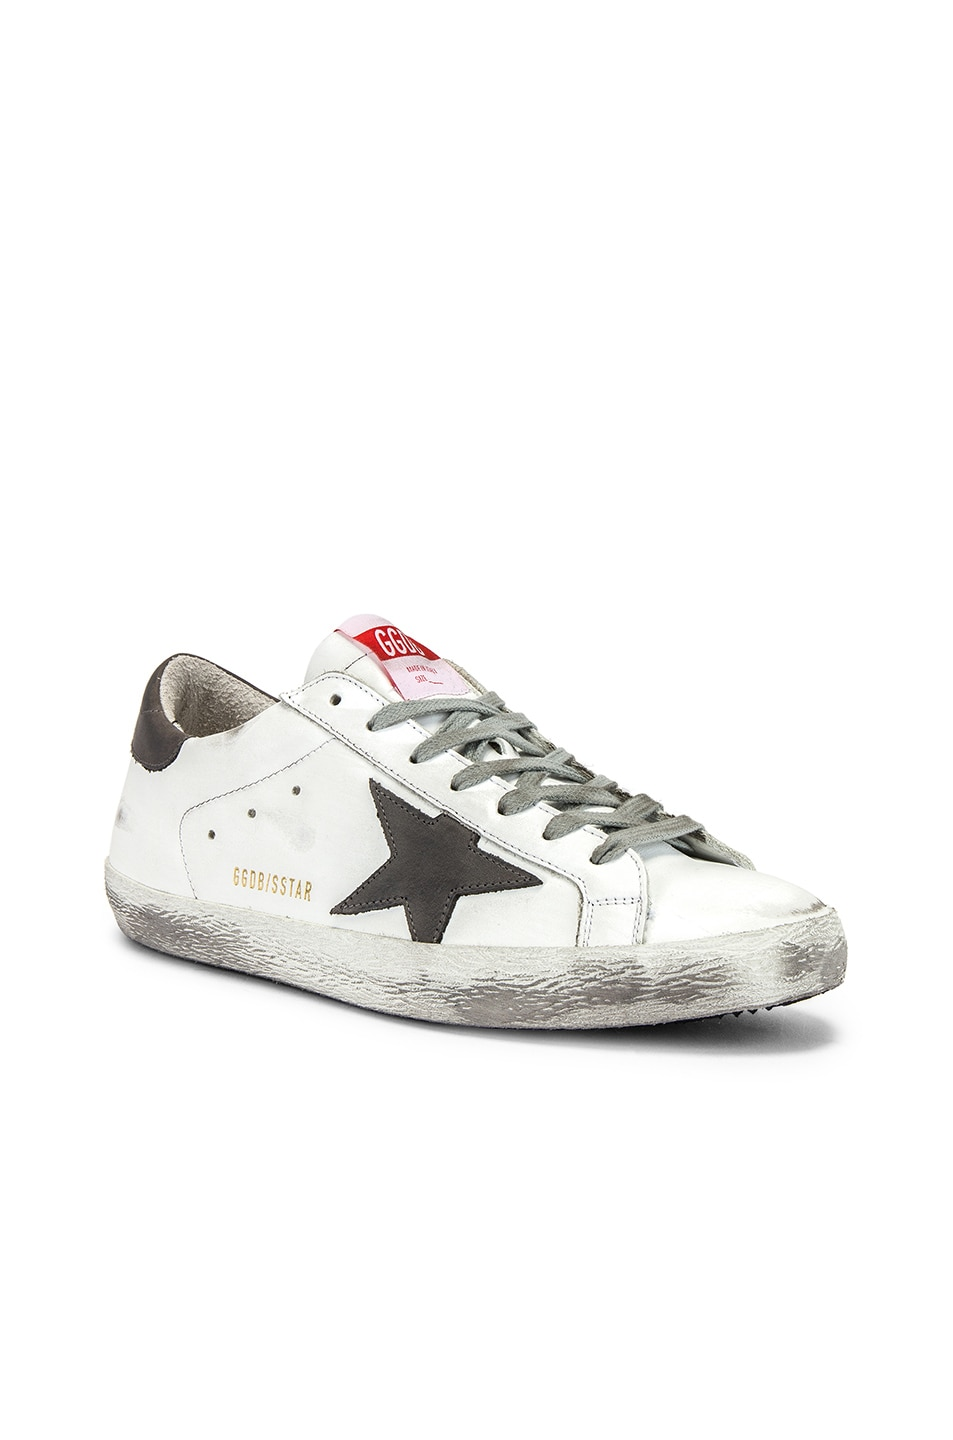 Image 1 of Golden Goose Superstar Sneaker in White & Grey Nubuck Star